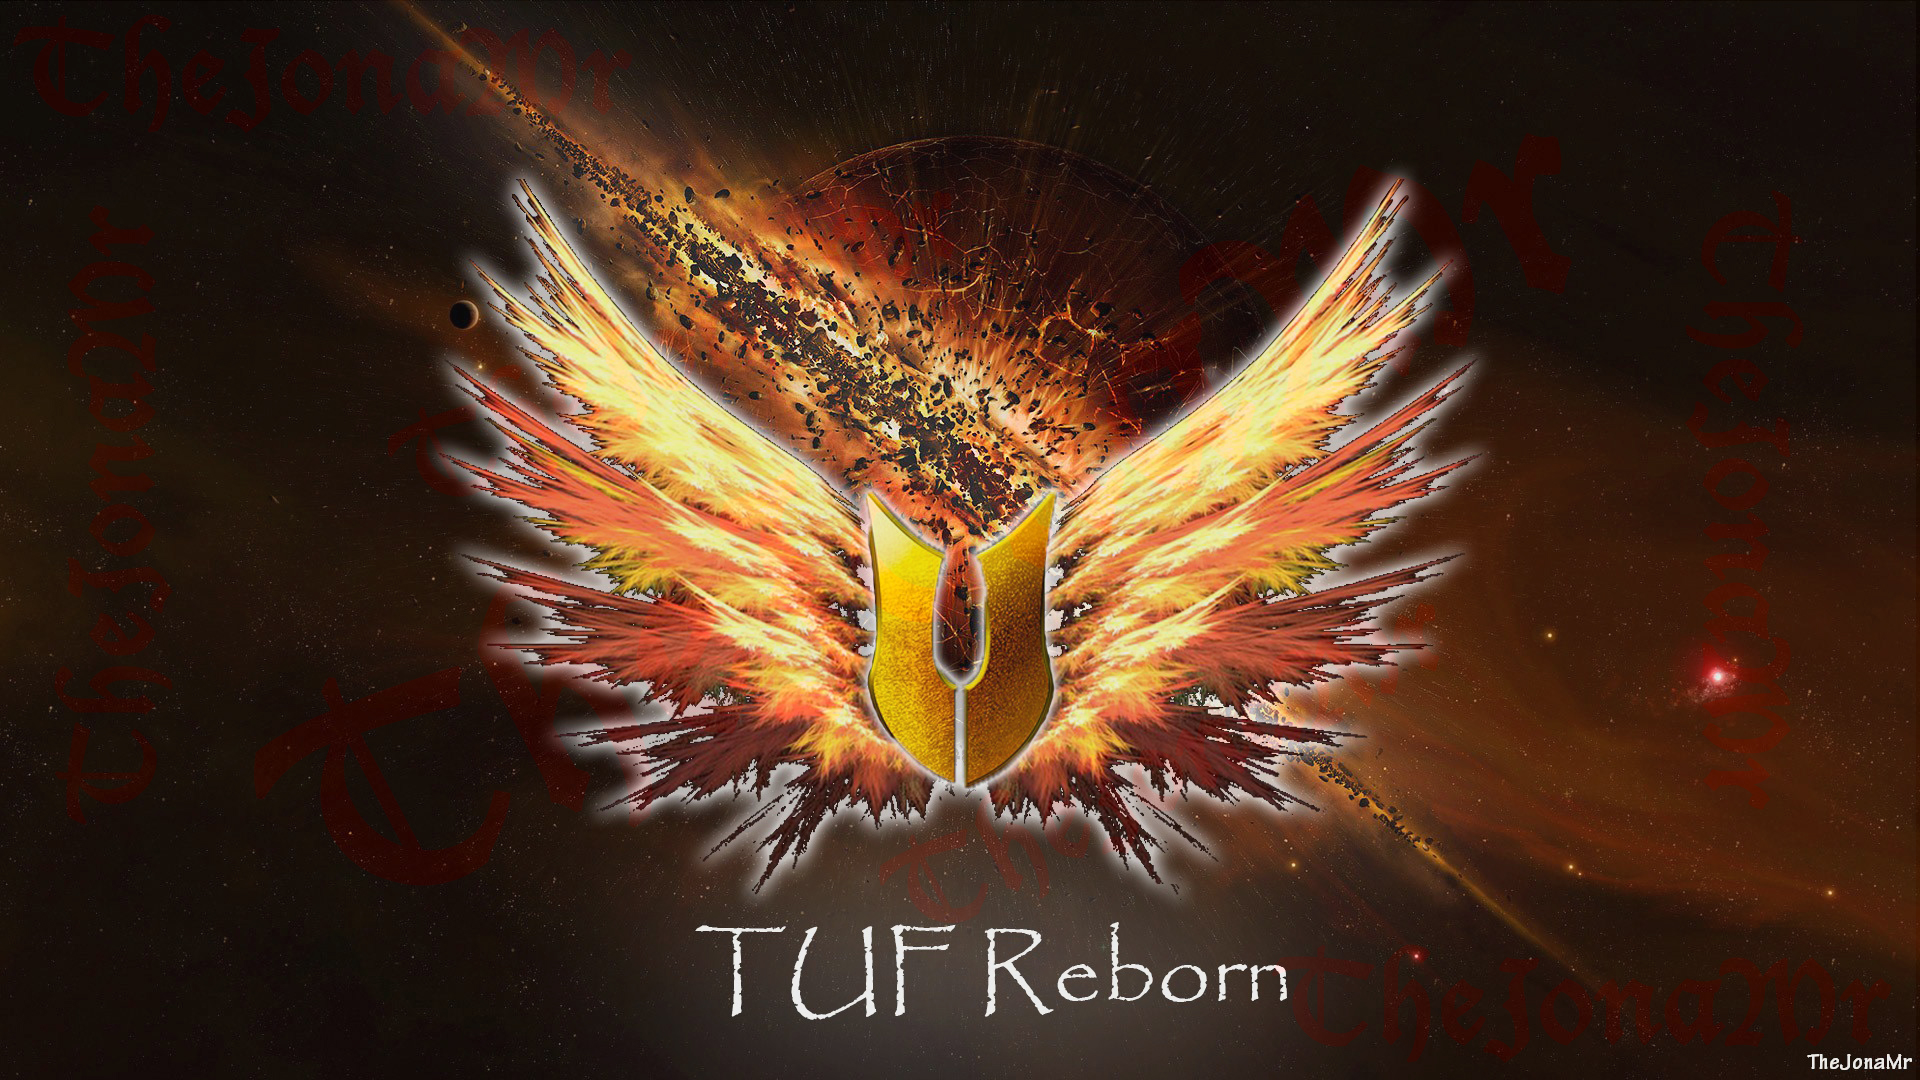 Asus tuf reborn by thejonamr on deviantart - Asus x series wallpaper hd ...